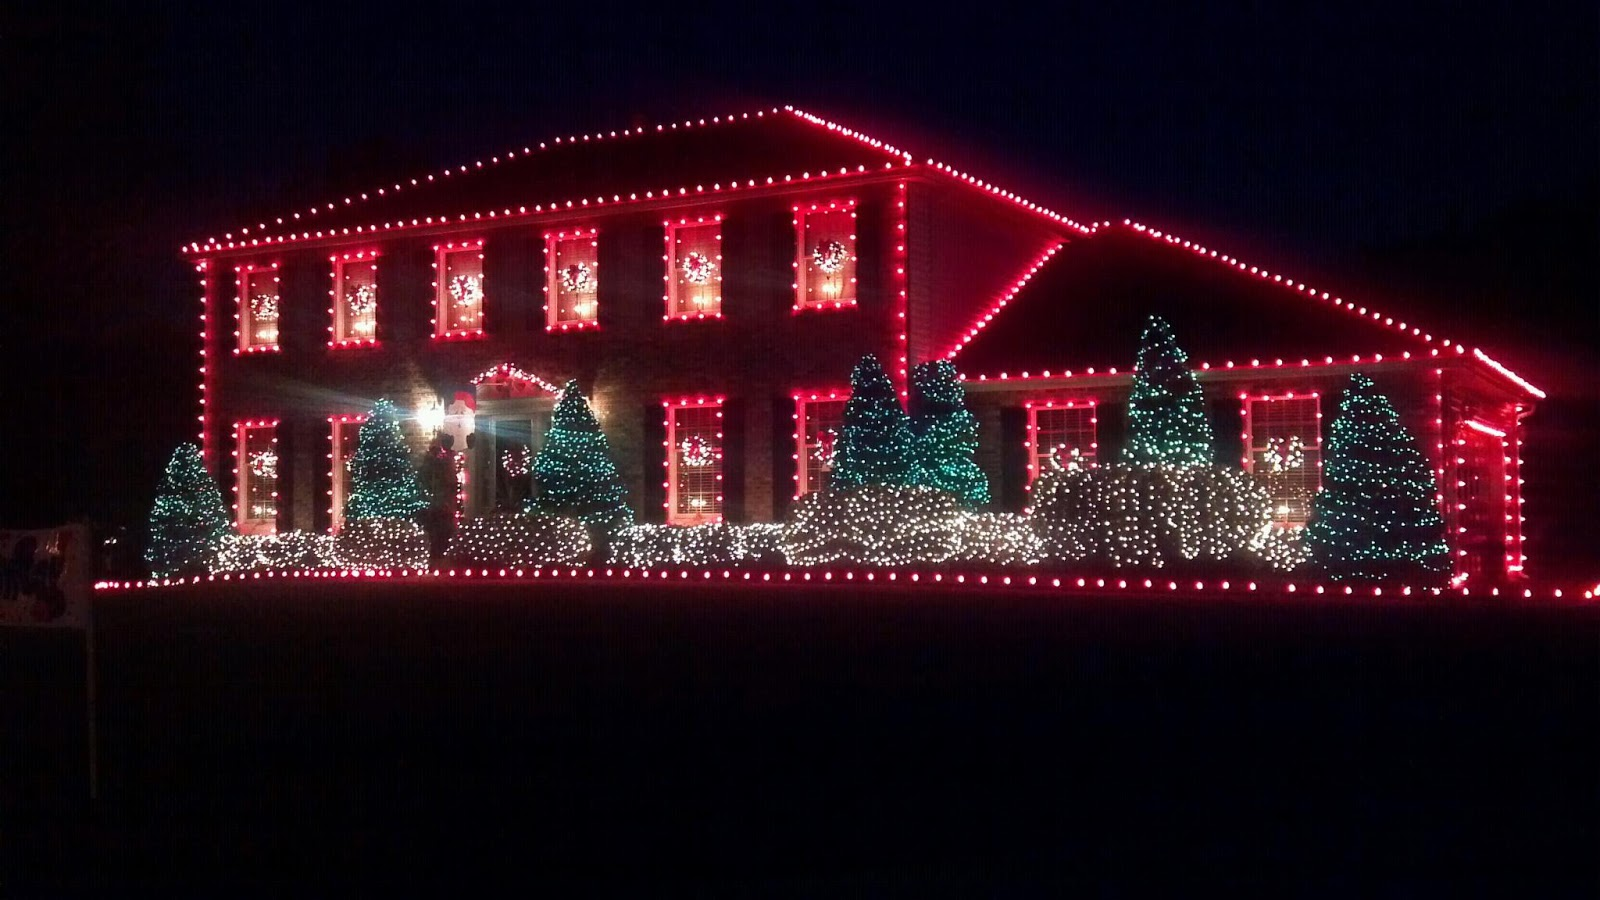 christmas lights on house - Red White Green Christmas Lights